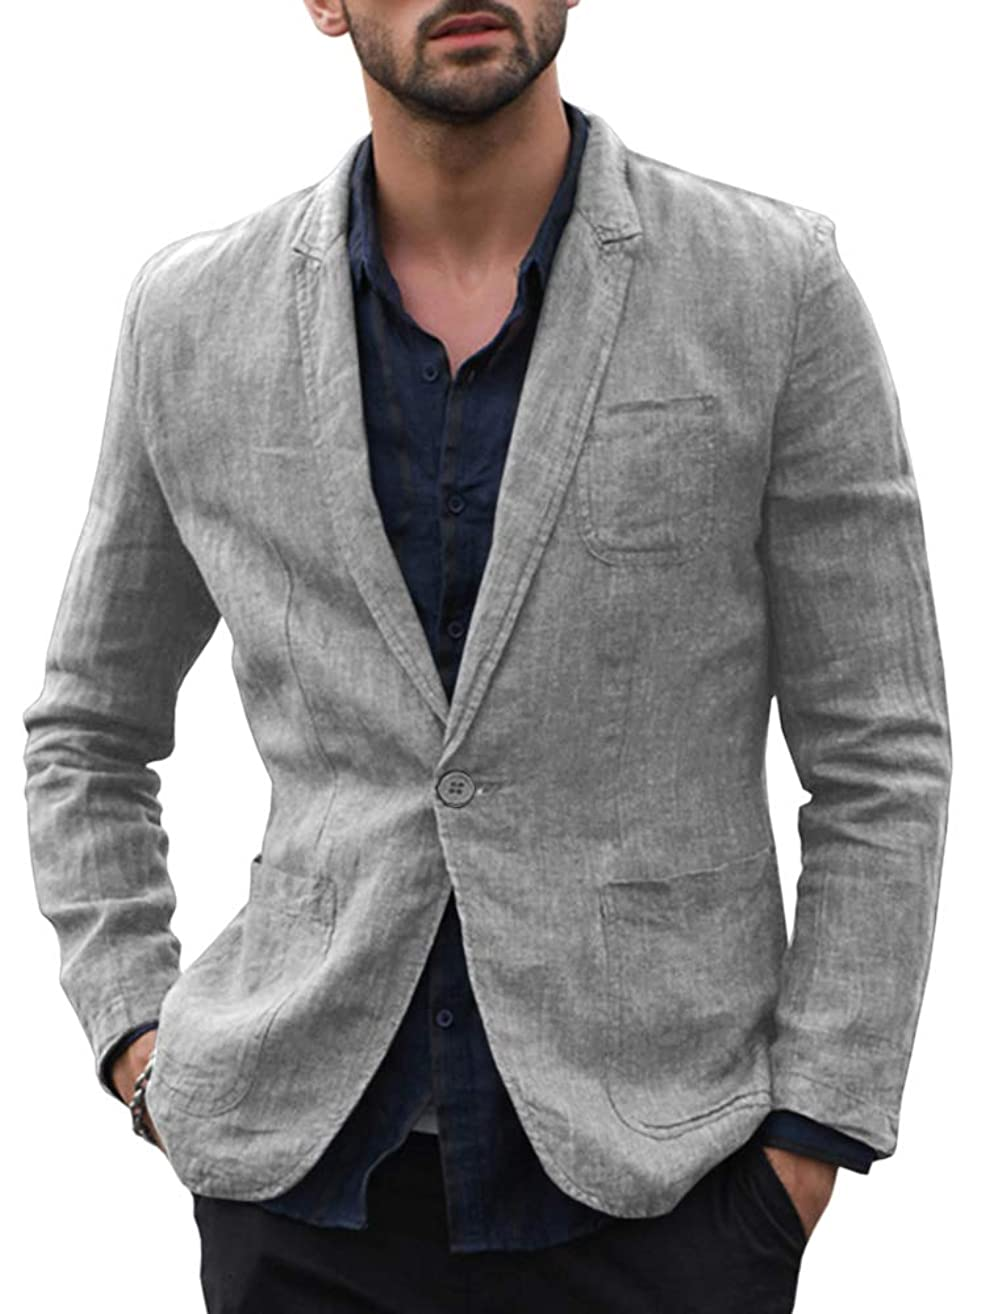 Enjoybuy Mens Casual Linen Tailored Blazer Long Sleeve Two-Button Lightweight Suit Jacket